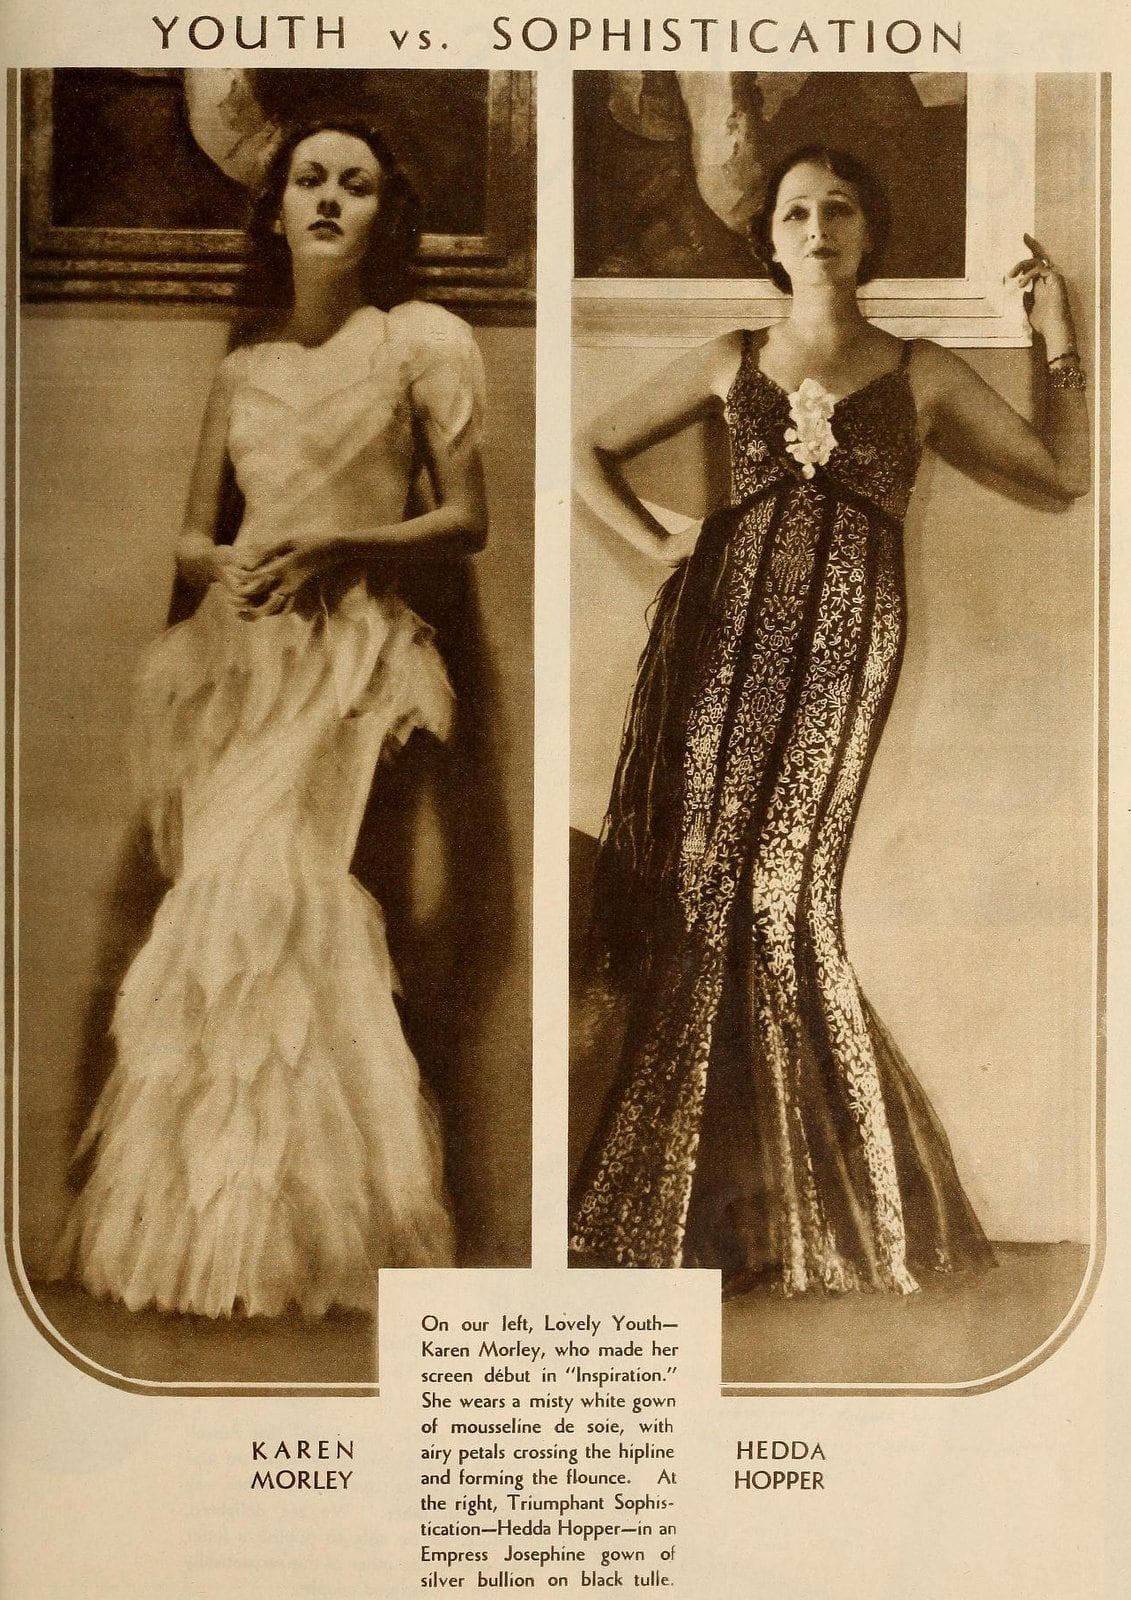 Vintage beauty from 1931 - Youth vs sophistication